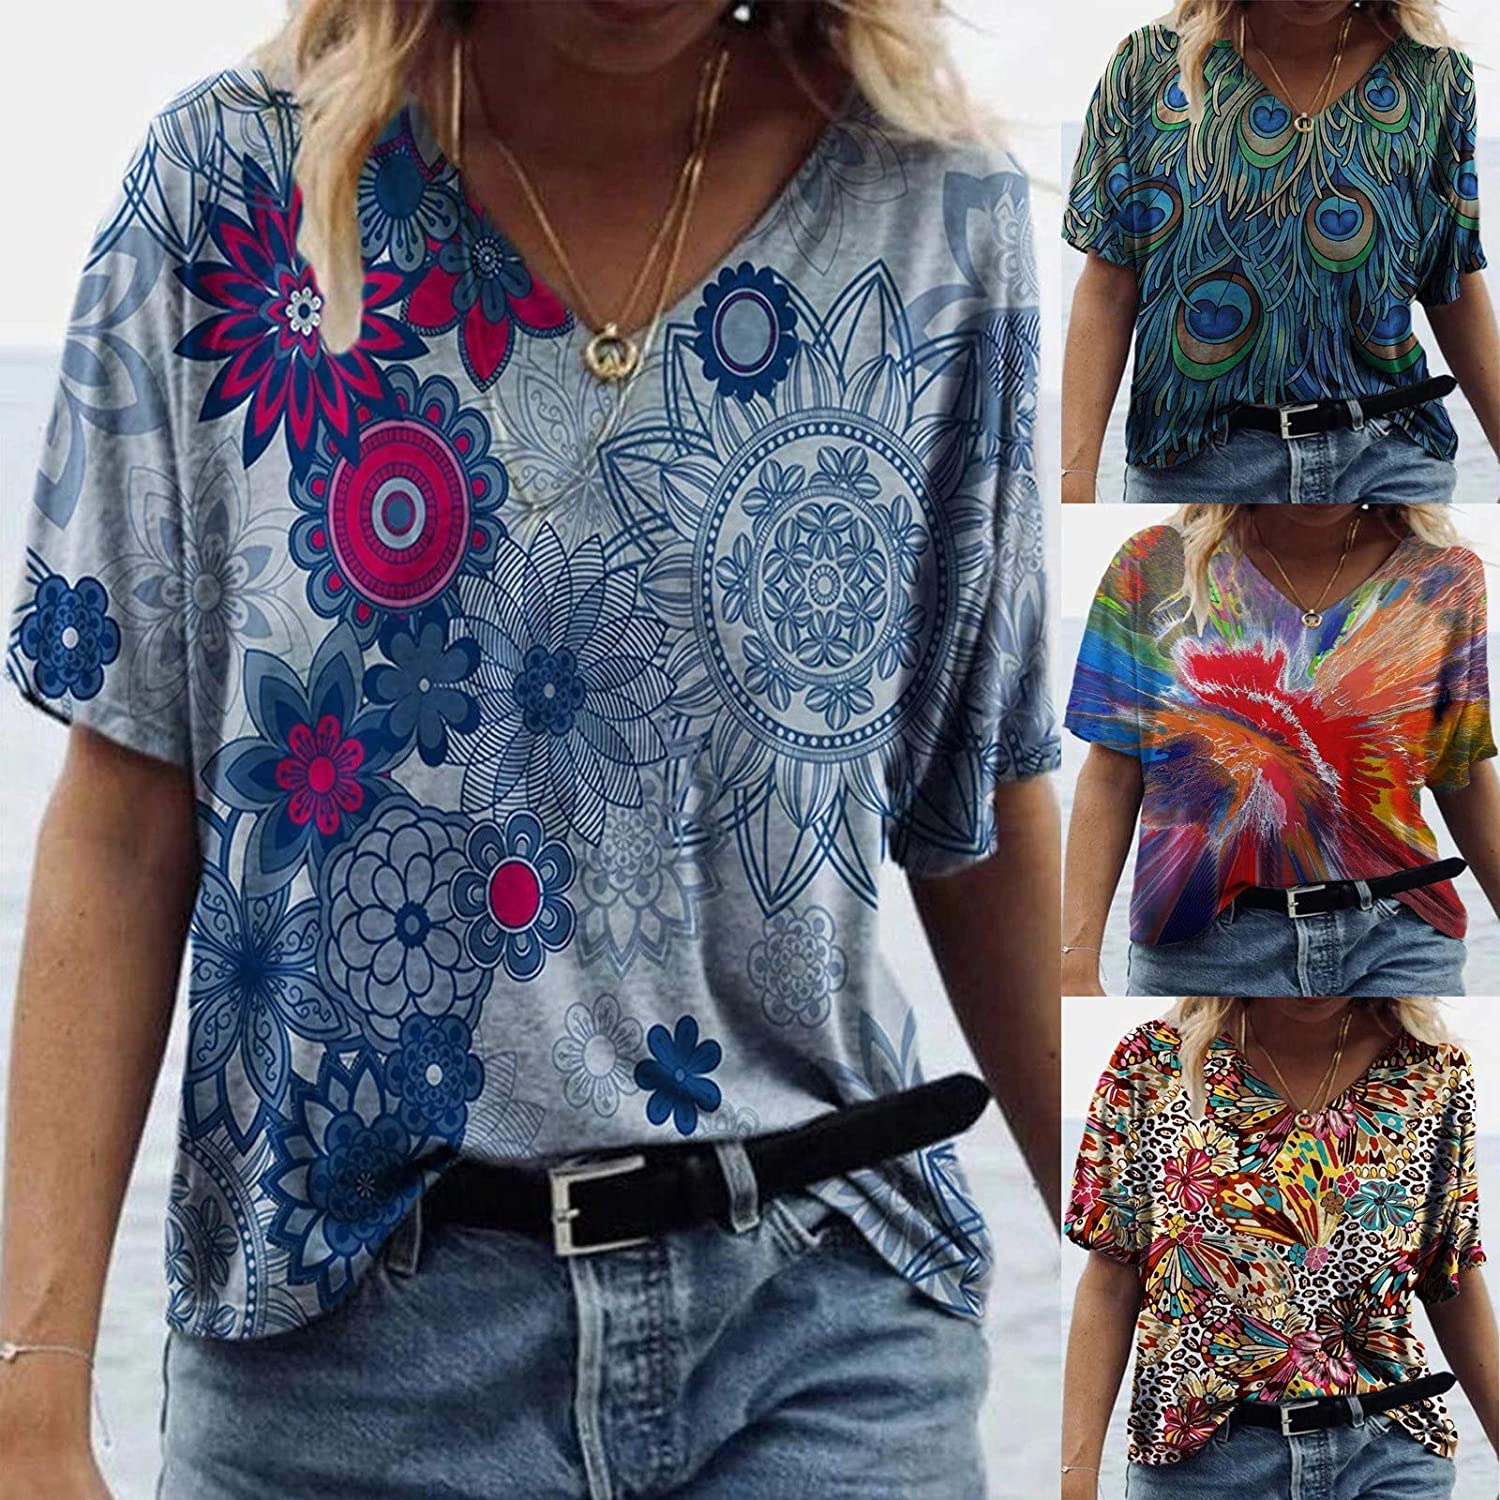 POLLYANNA KEONG Cute Summer Tops for Women,Womens Tops V Neck Summer Floral Printed Casual Loose Shirts Tunic Blouses